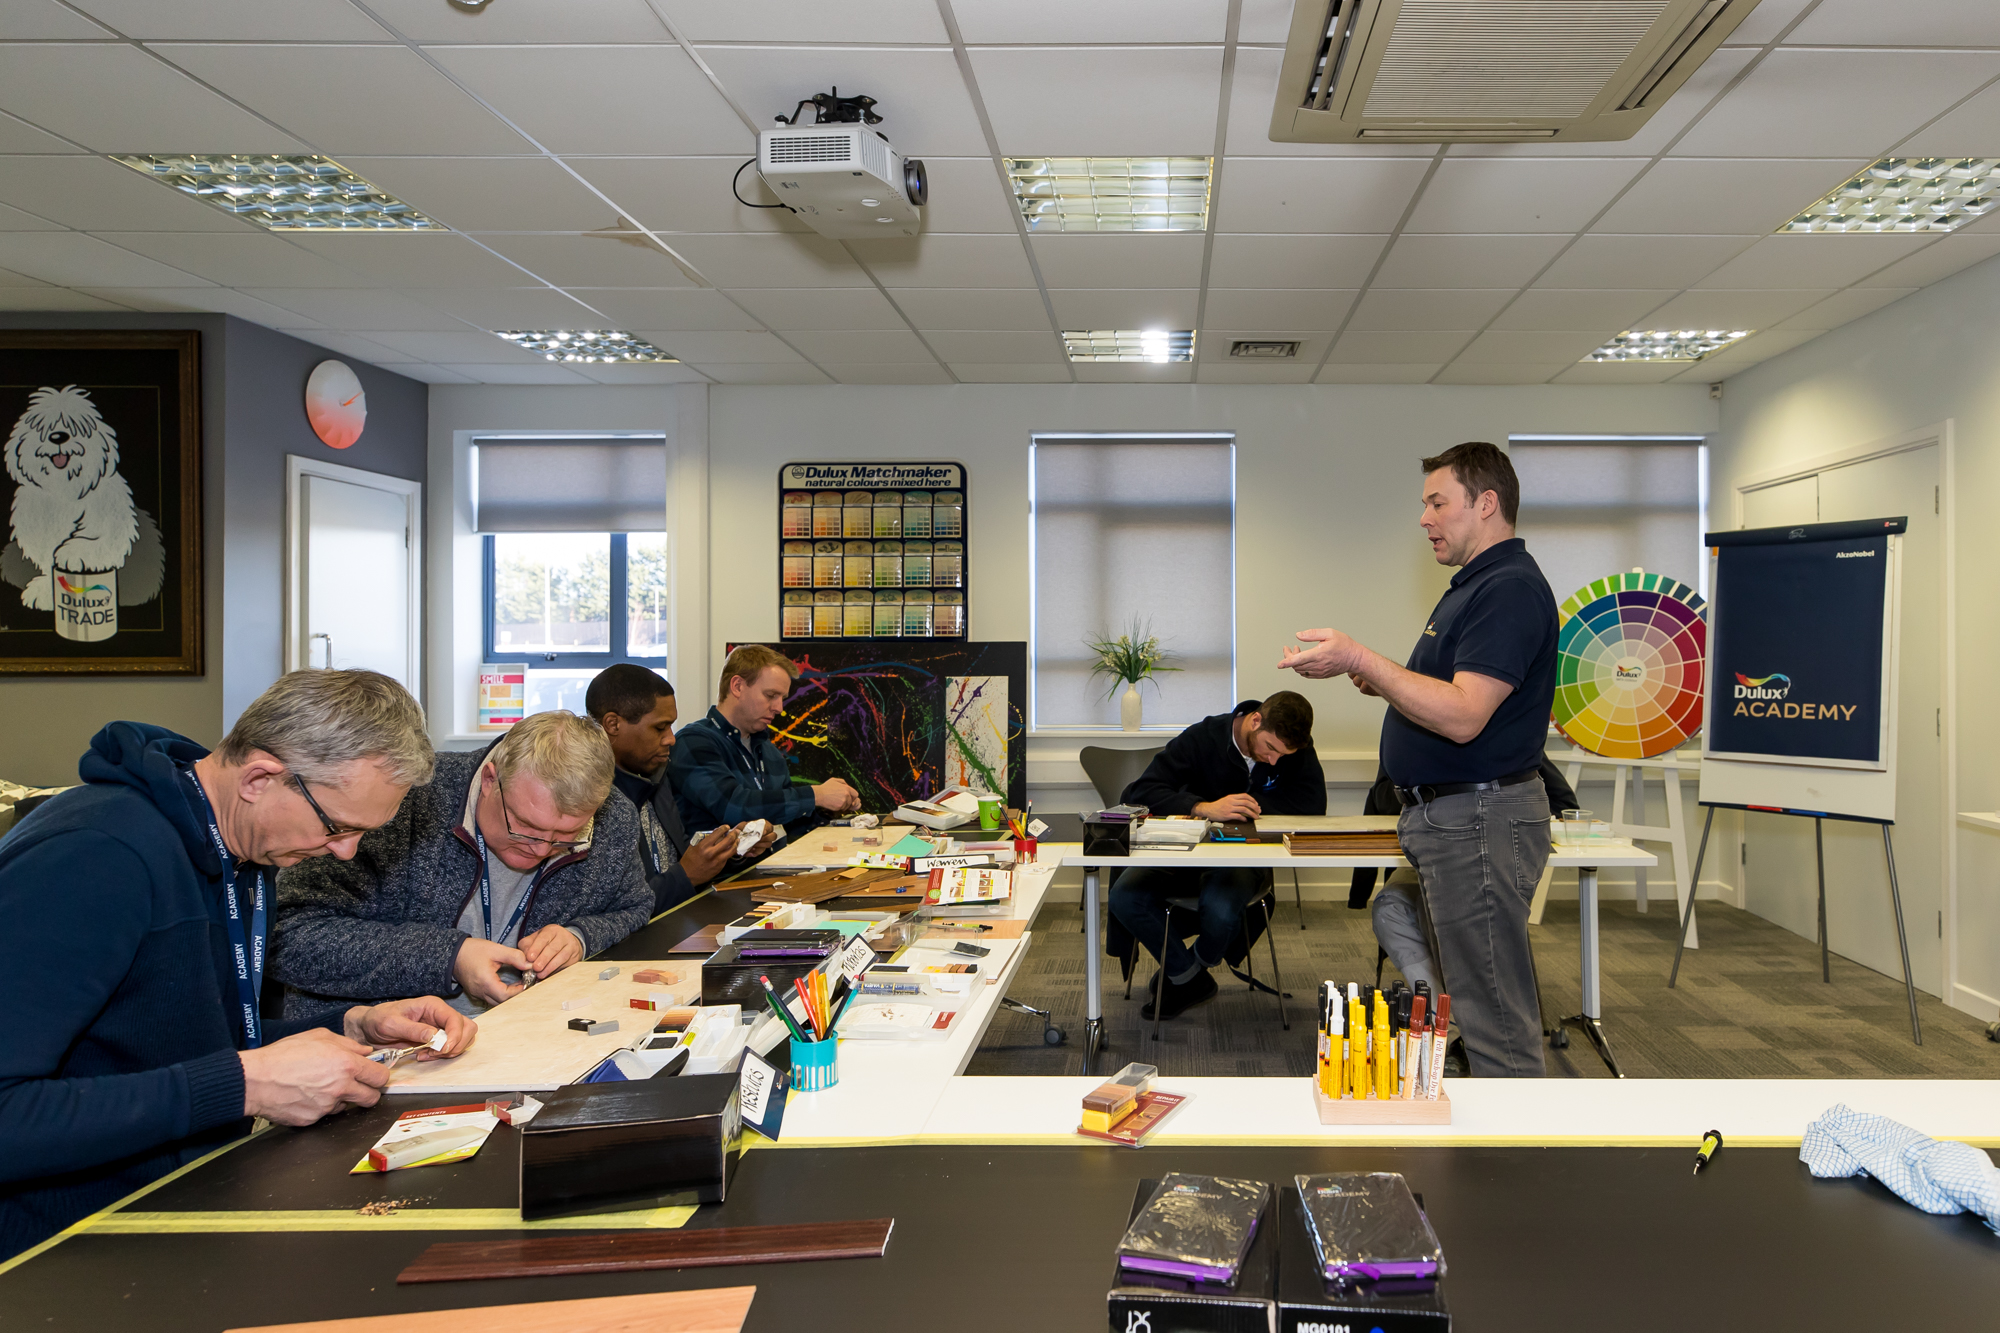 Inside The Dulux Academy (Part Three)